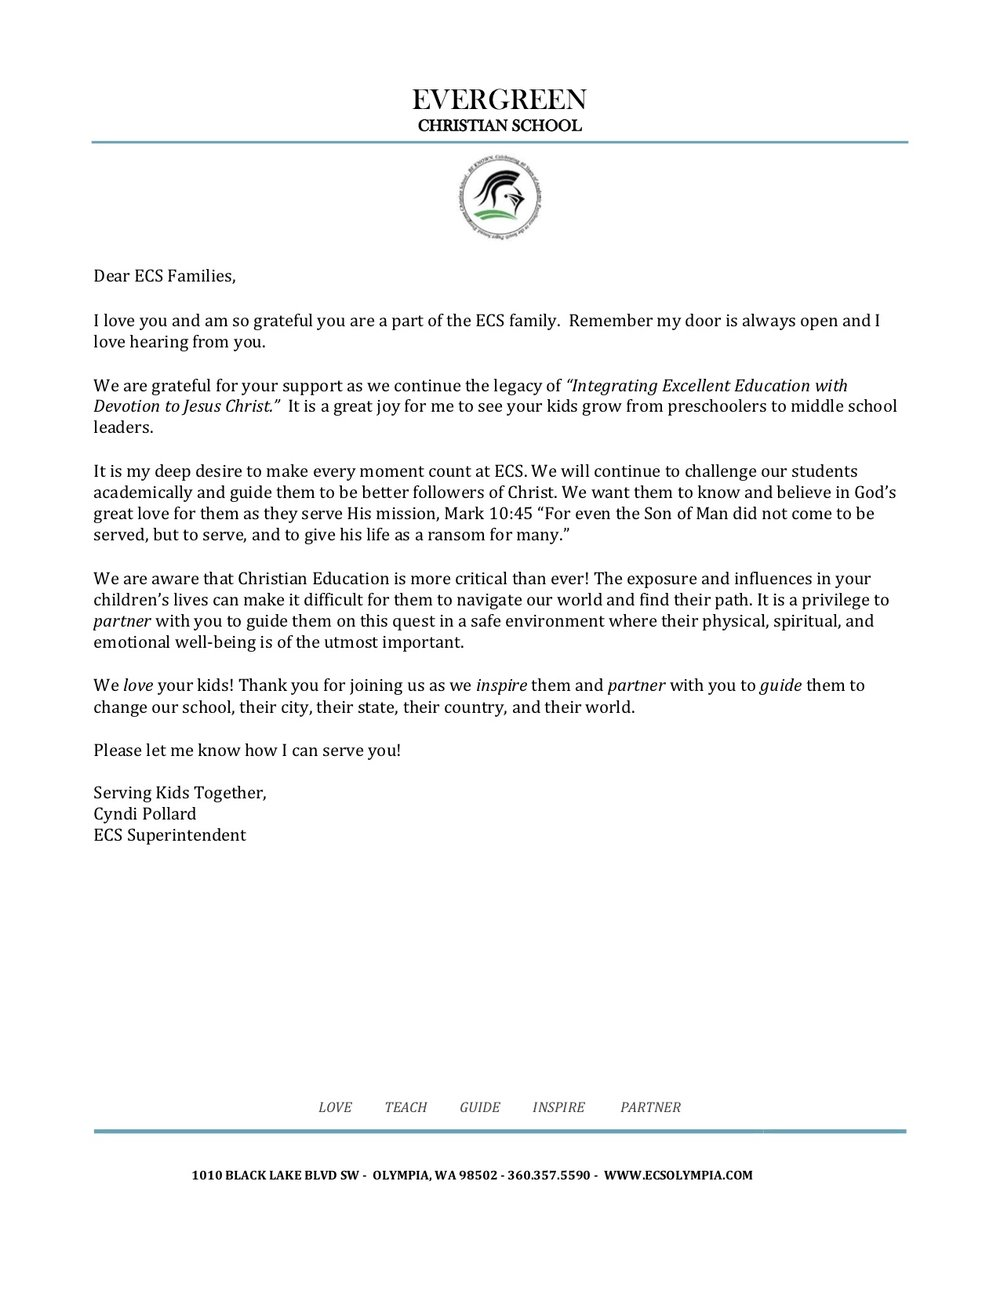 superintendent letter to families evergreen christian school